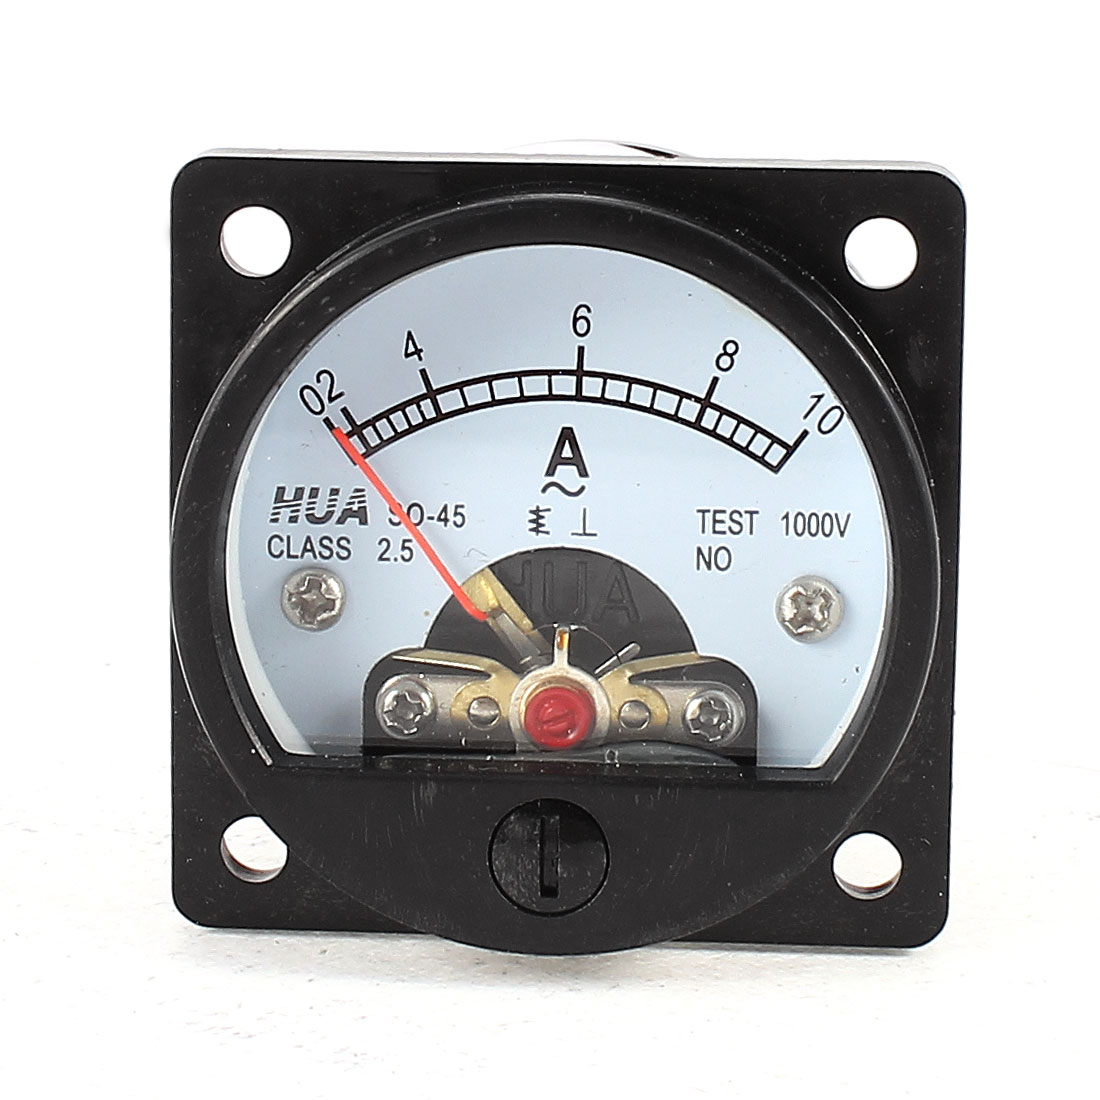 SO-45 Class 2.5 Accuracy AC 0-10A Analog Ammeter Panel Meter Black